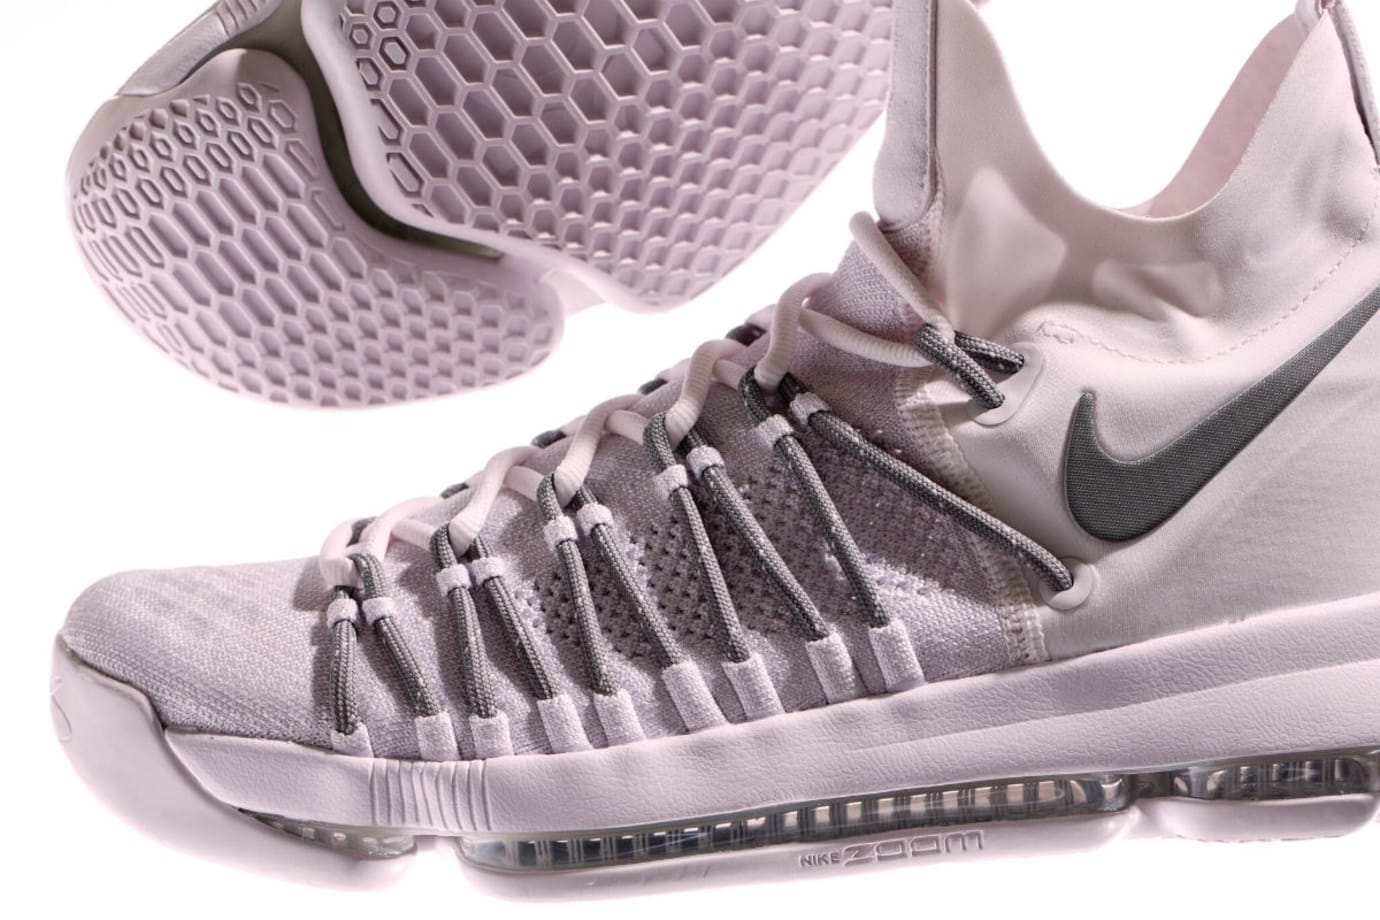 new arrival 7225e 2b443 ... coupon for nike kd 9 elite pink dust release date 2 80920 73cf6